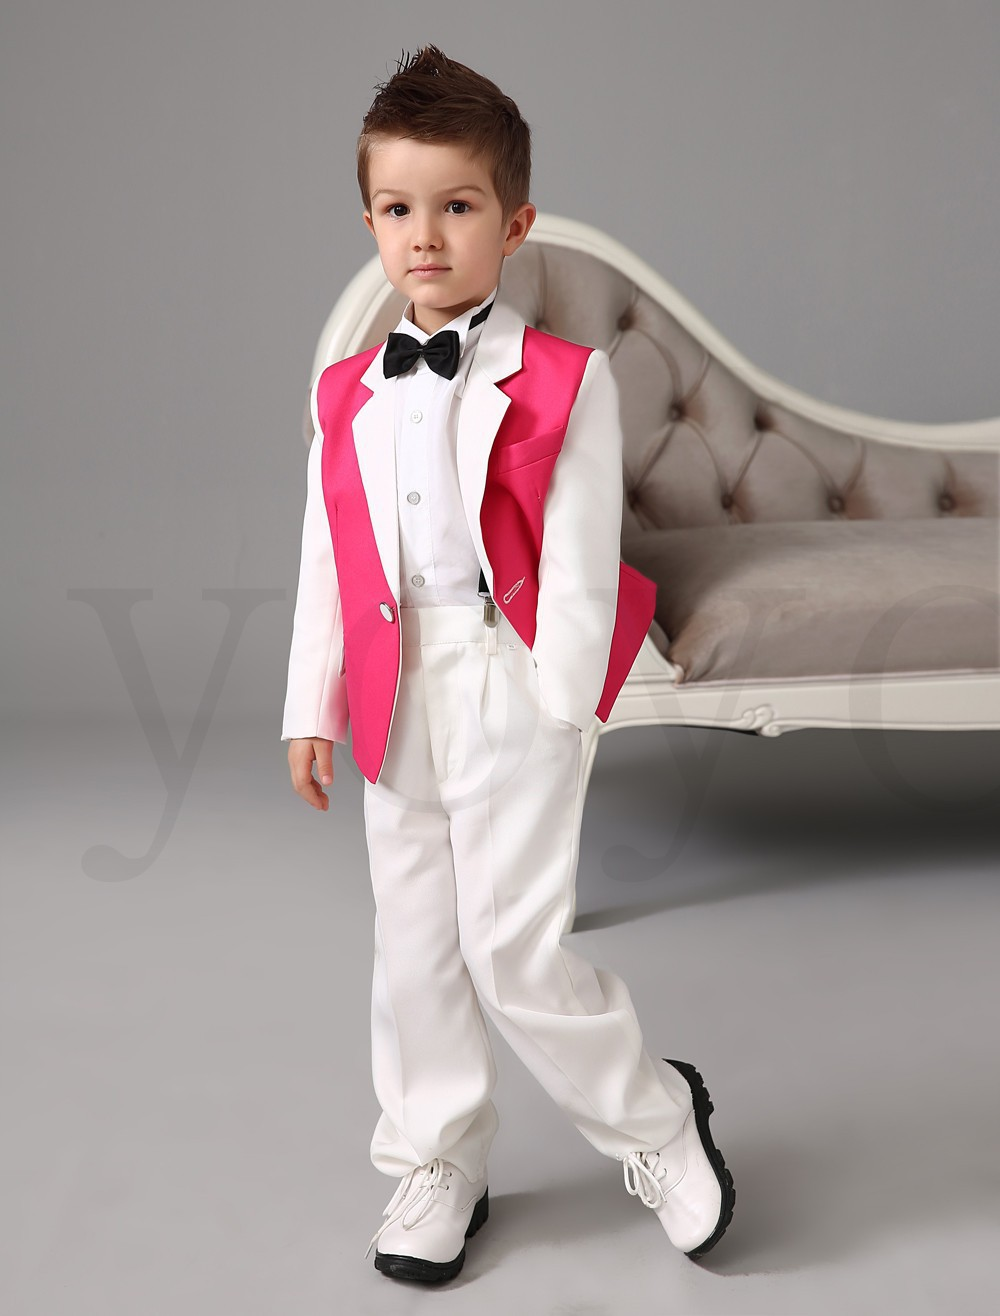 2015 White Pink Boys Tuxedos Wedding Attire Baby Boy Dress Clothes Coat Pants Tie BM 0039 Suits Blazers In From Mother Kids On